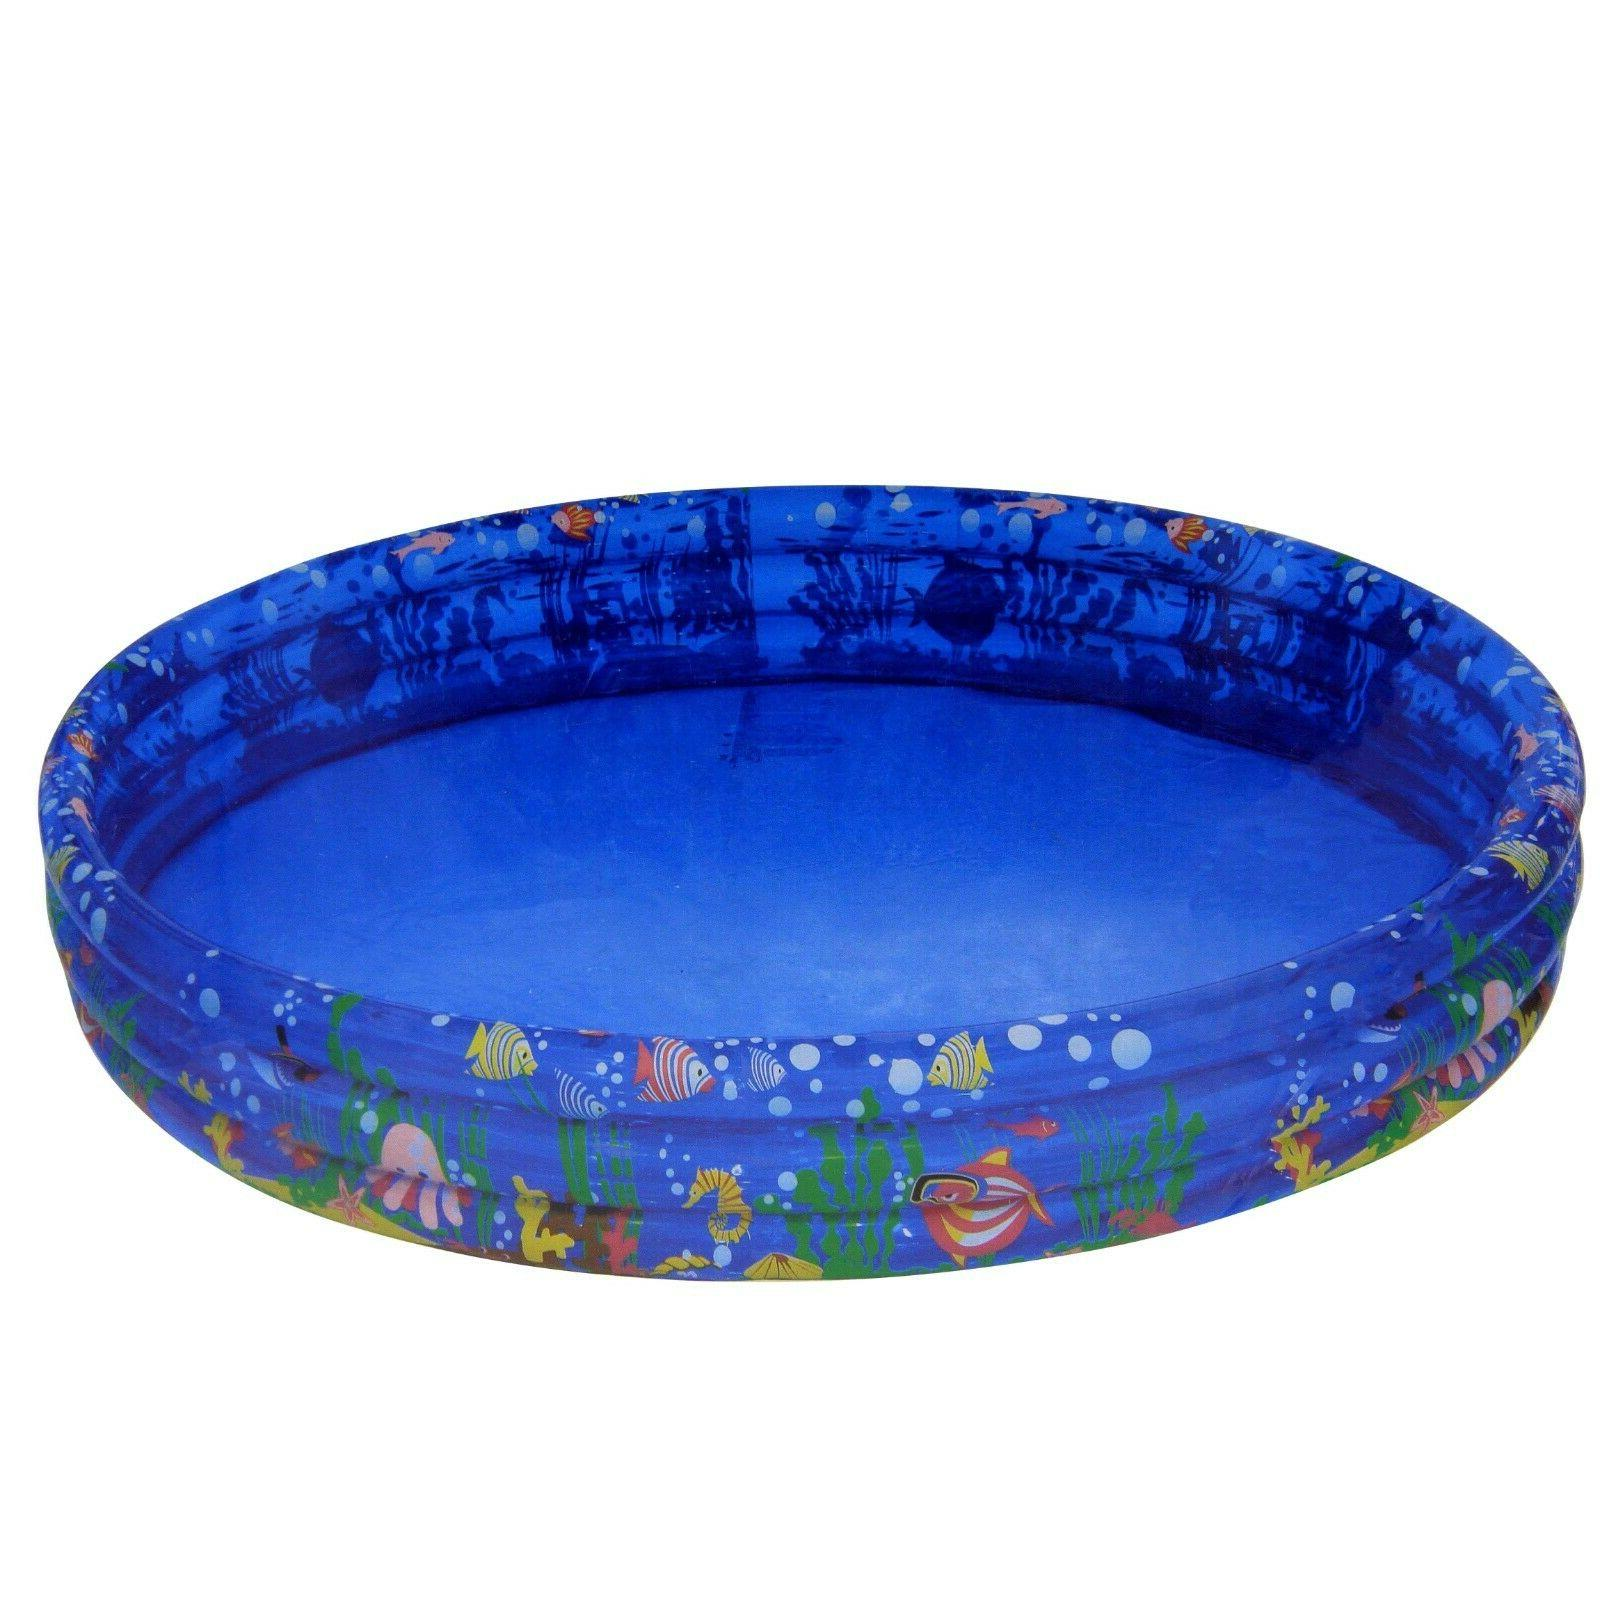 portable inflatable swimming pool 48 inch round